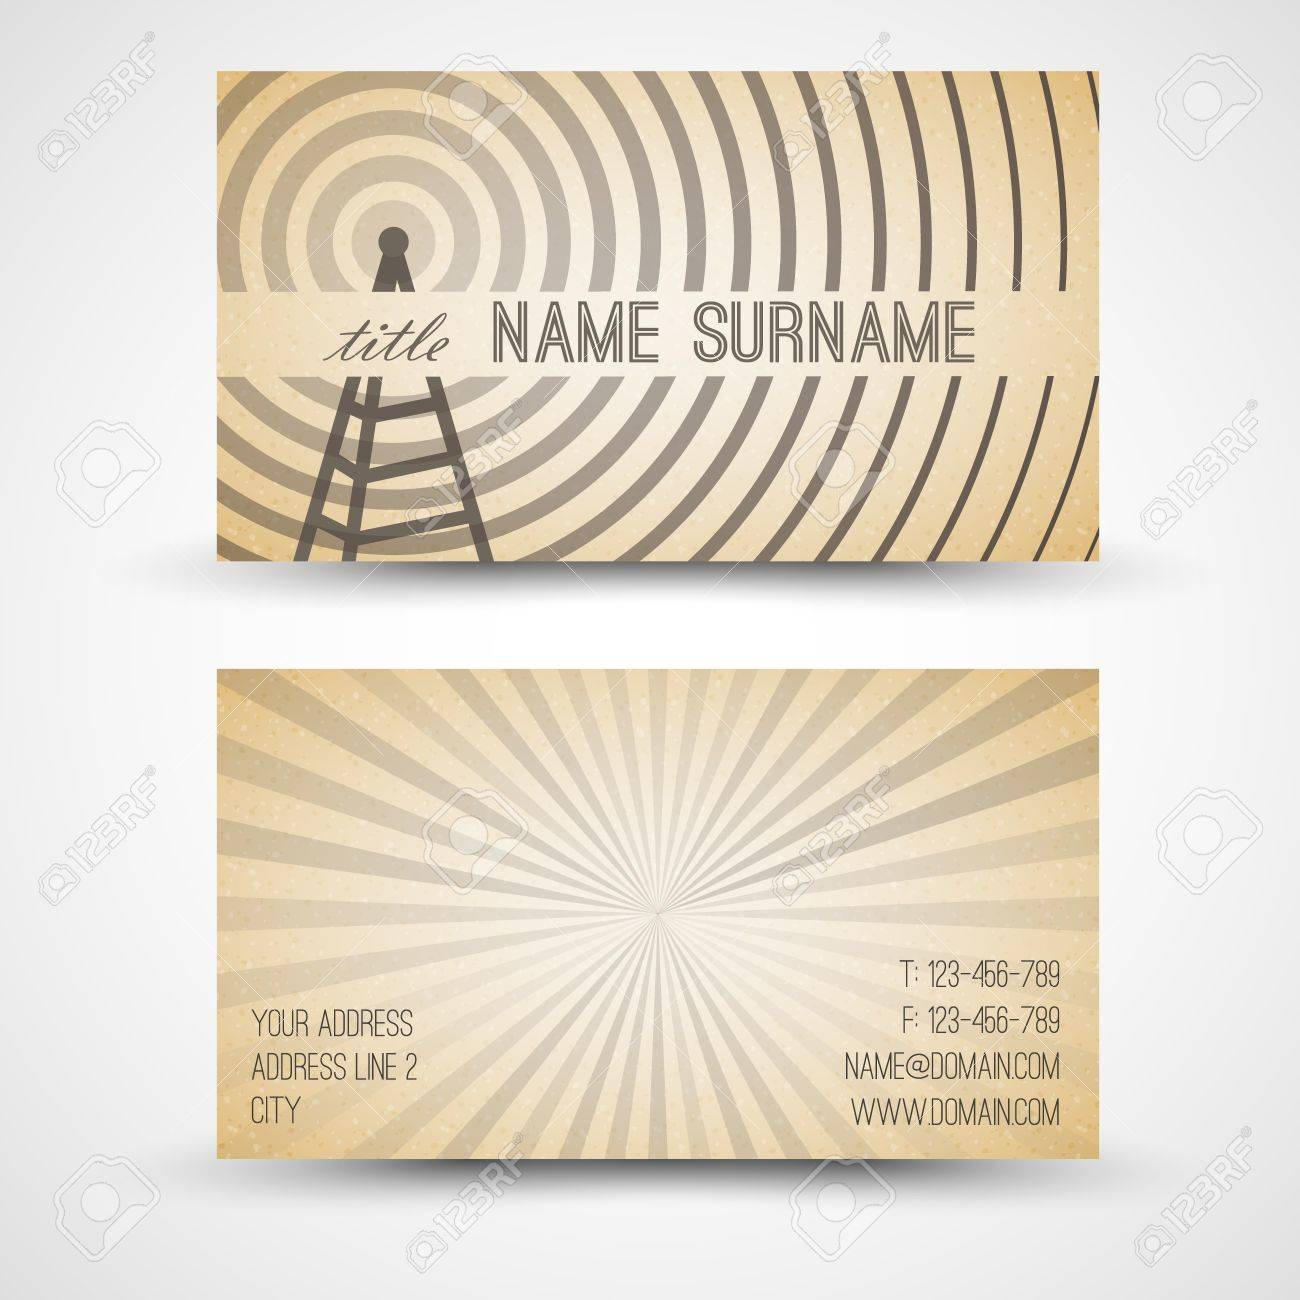 Vector Old-style Retro Vintage Business Card - Both Front And ...